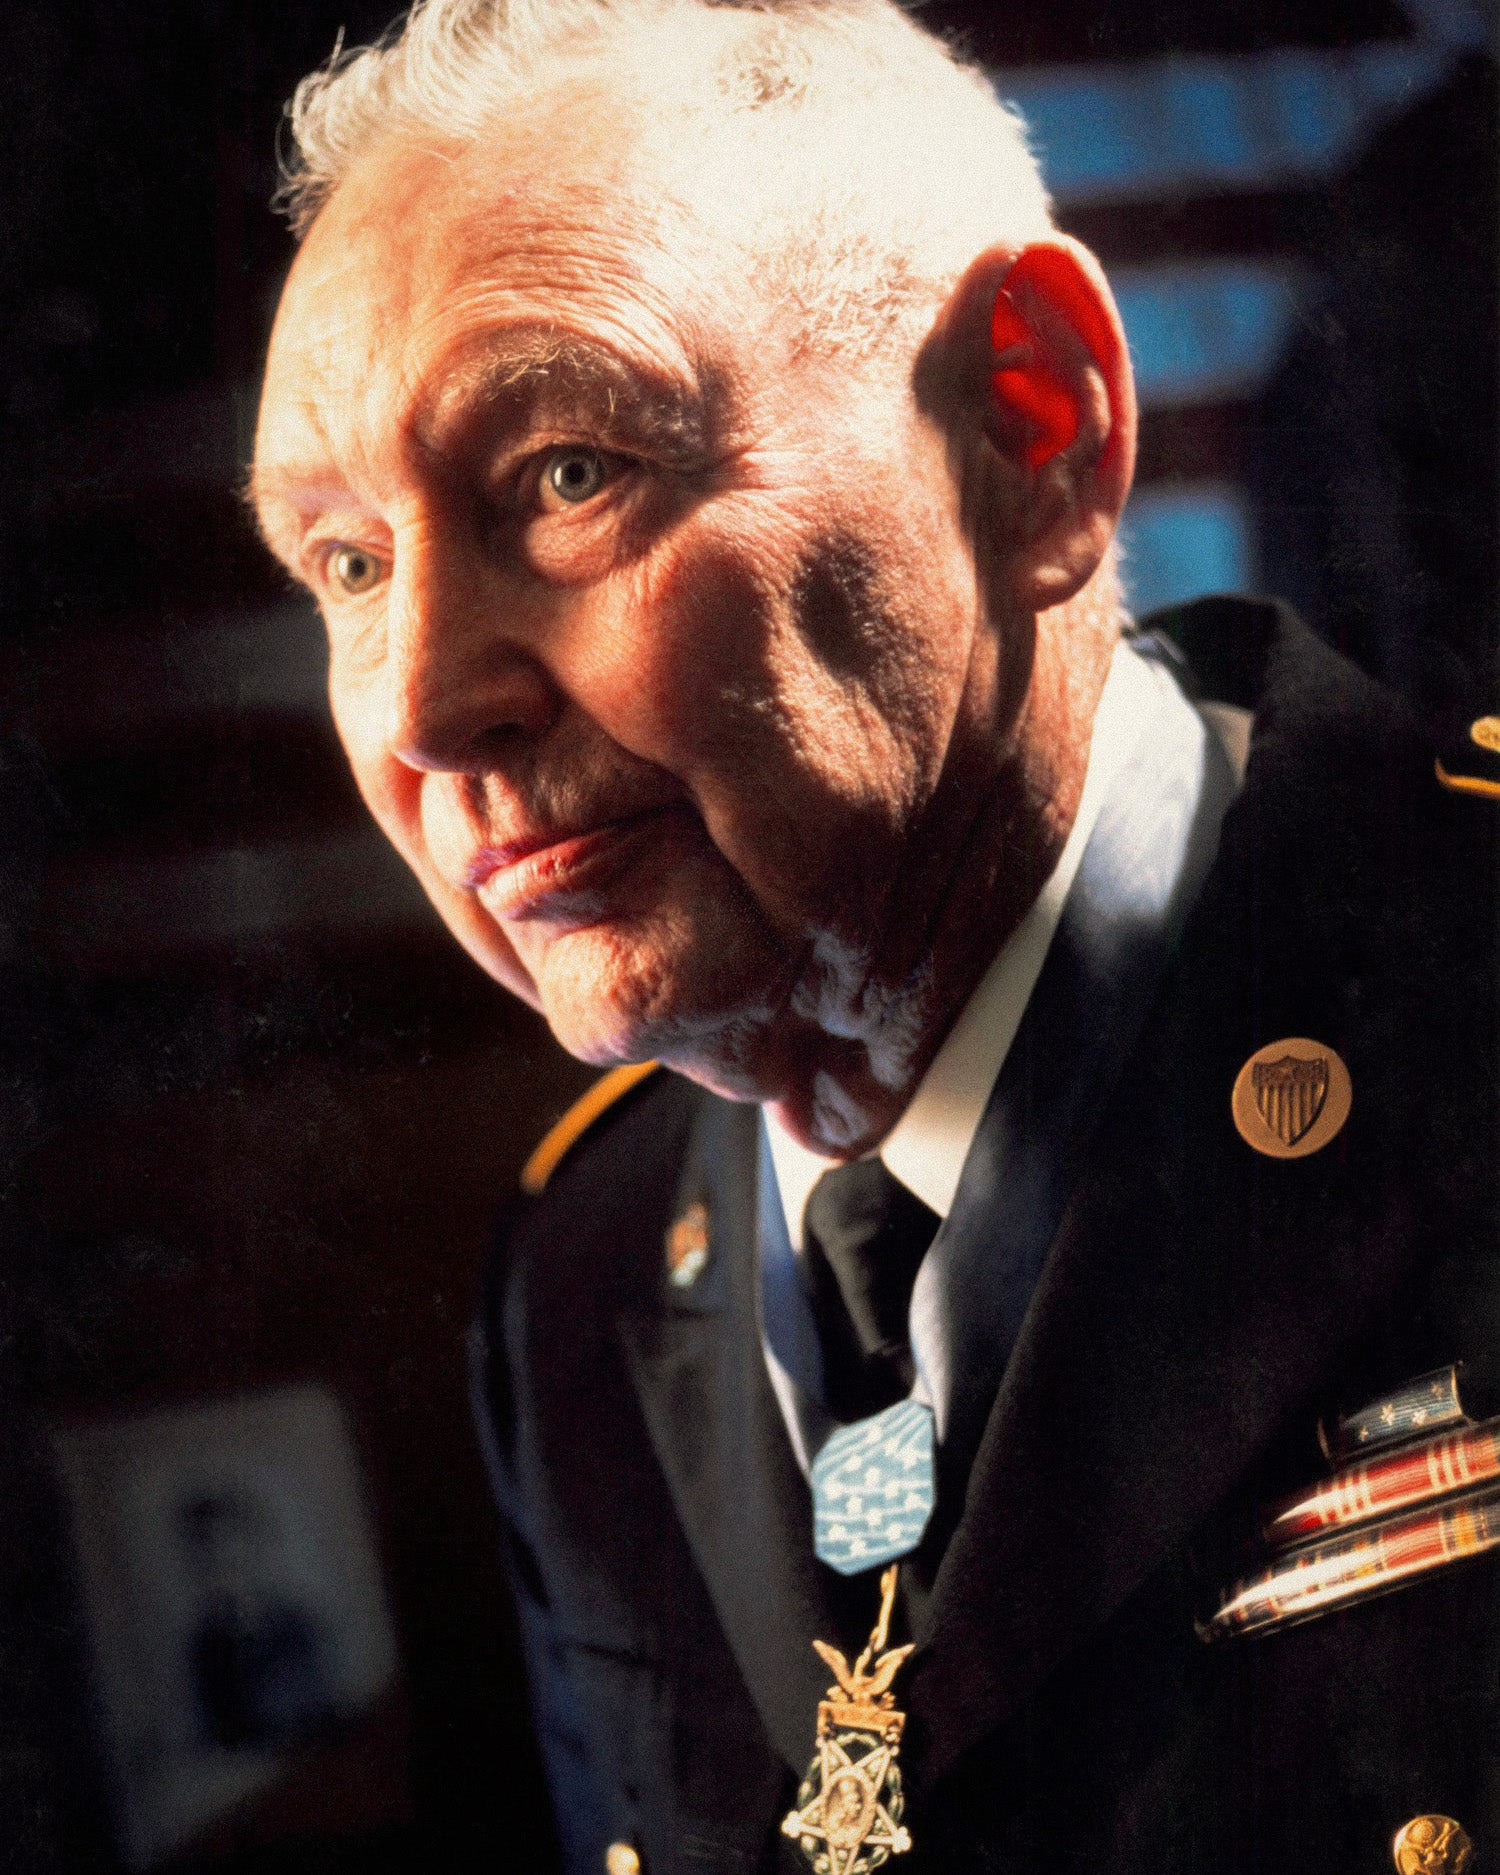 The Medal of Honor Recipient Who Became a Janitor